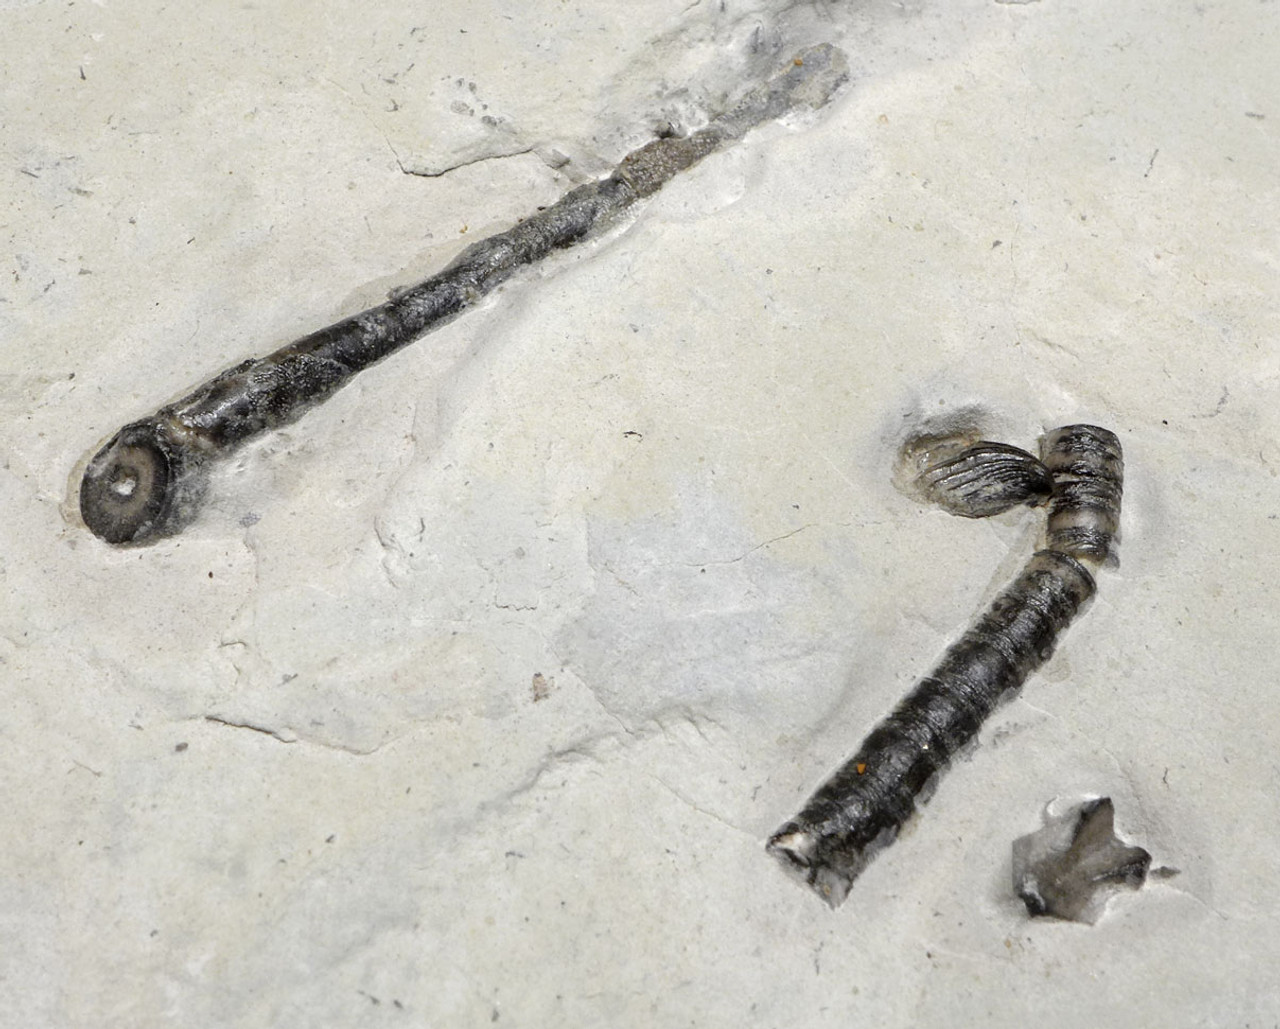 SILURIAN FOSSIL CRINOID HOLDFAST ROOT SYSTEM EUCALYPTOCRINITES FROM THE WALDRON SHALE *CRI044